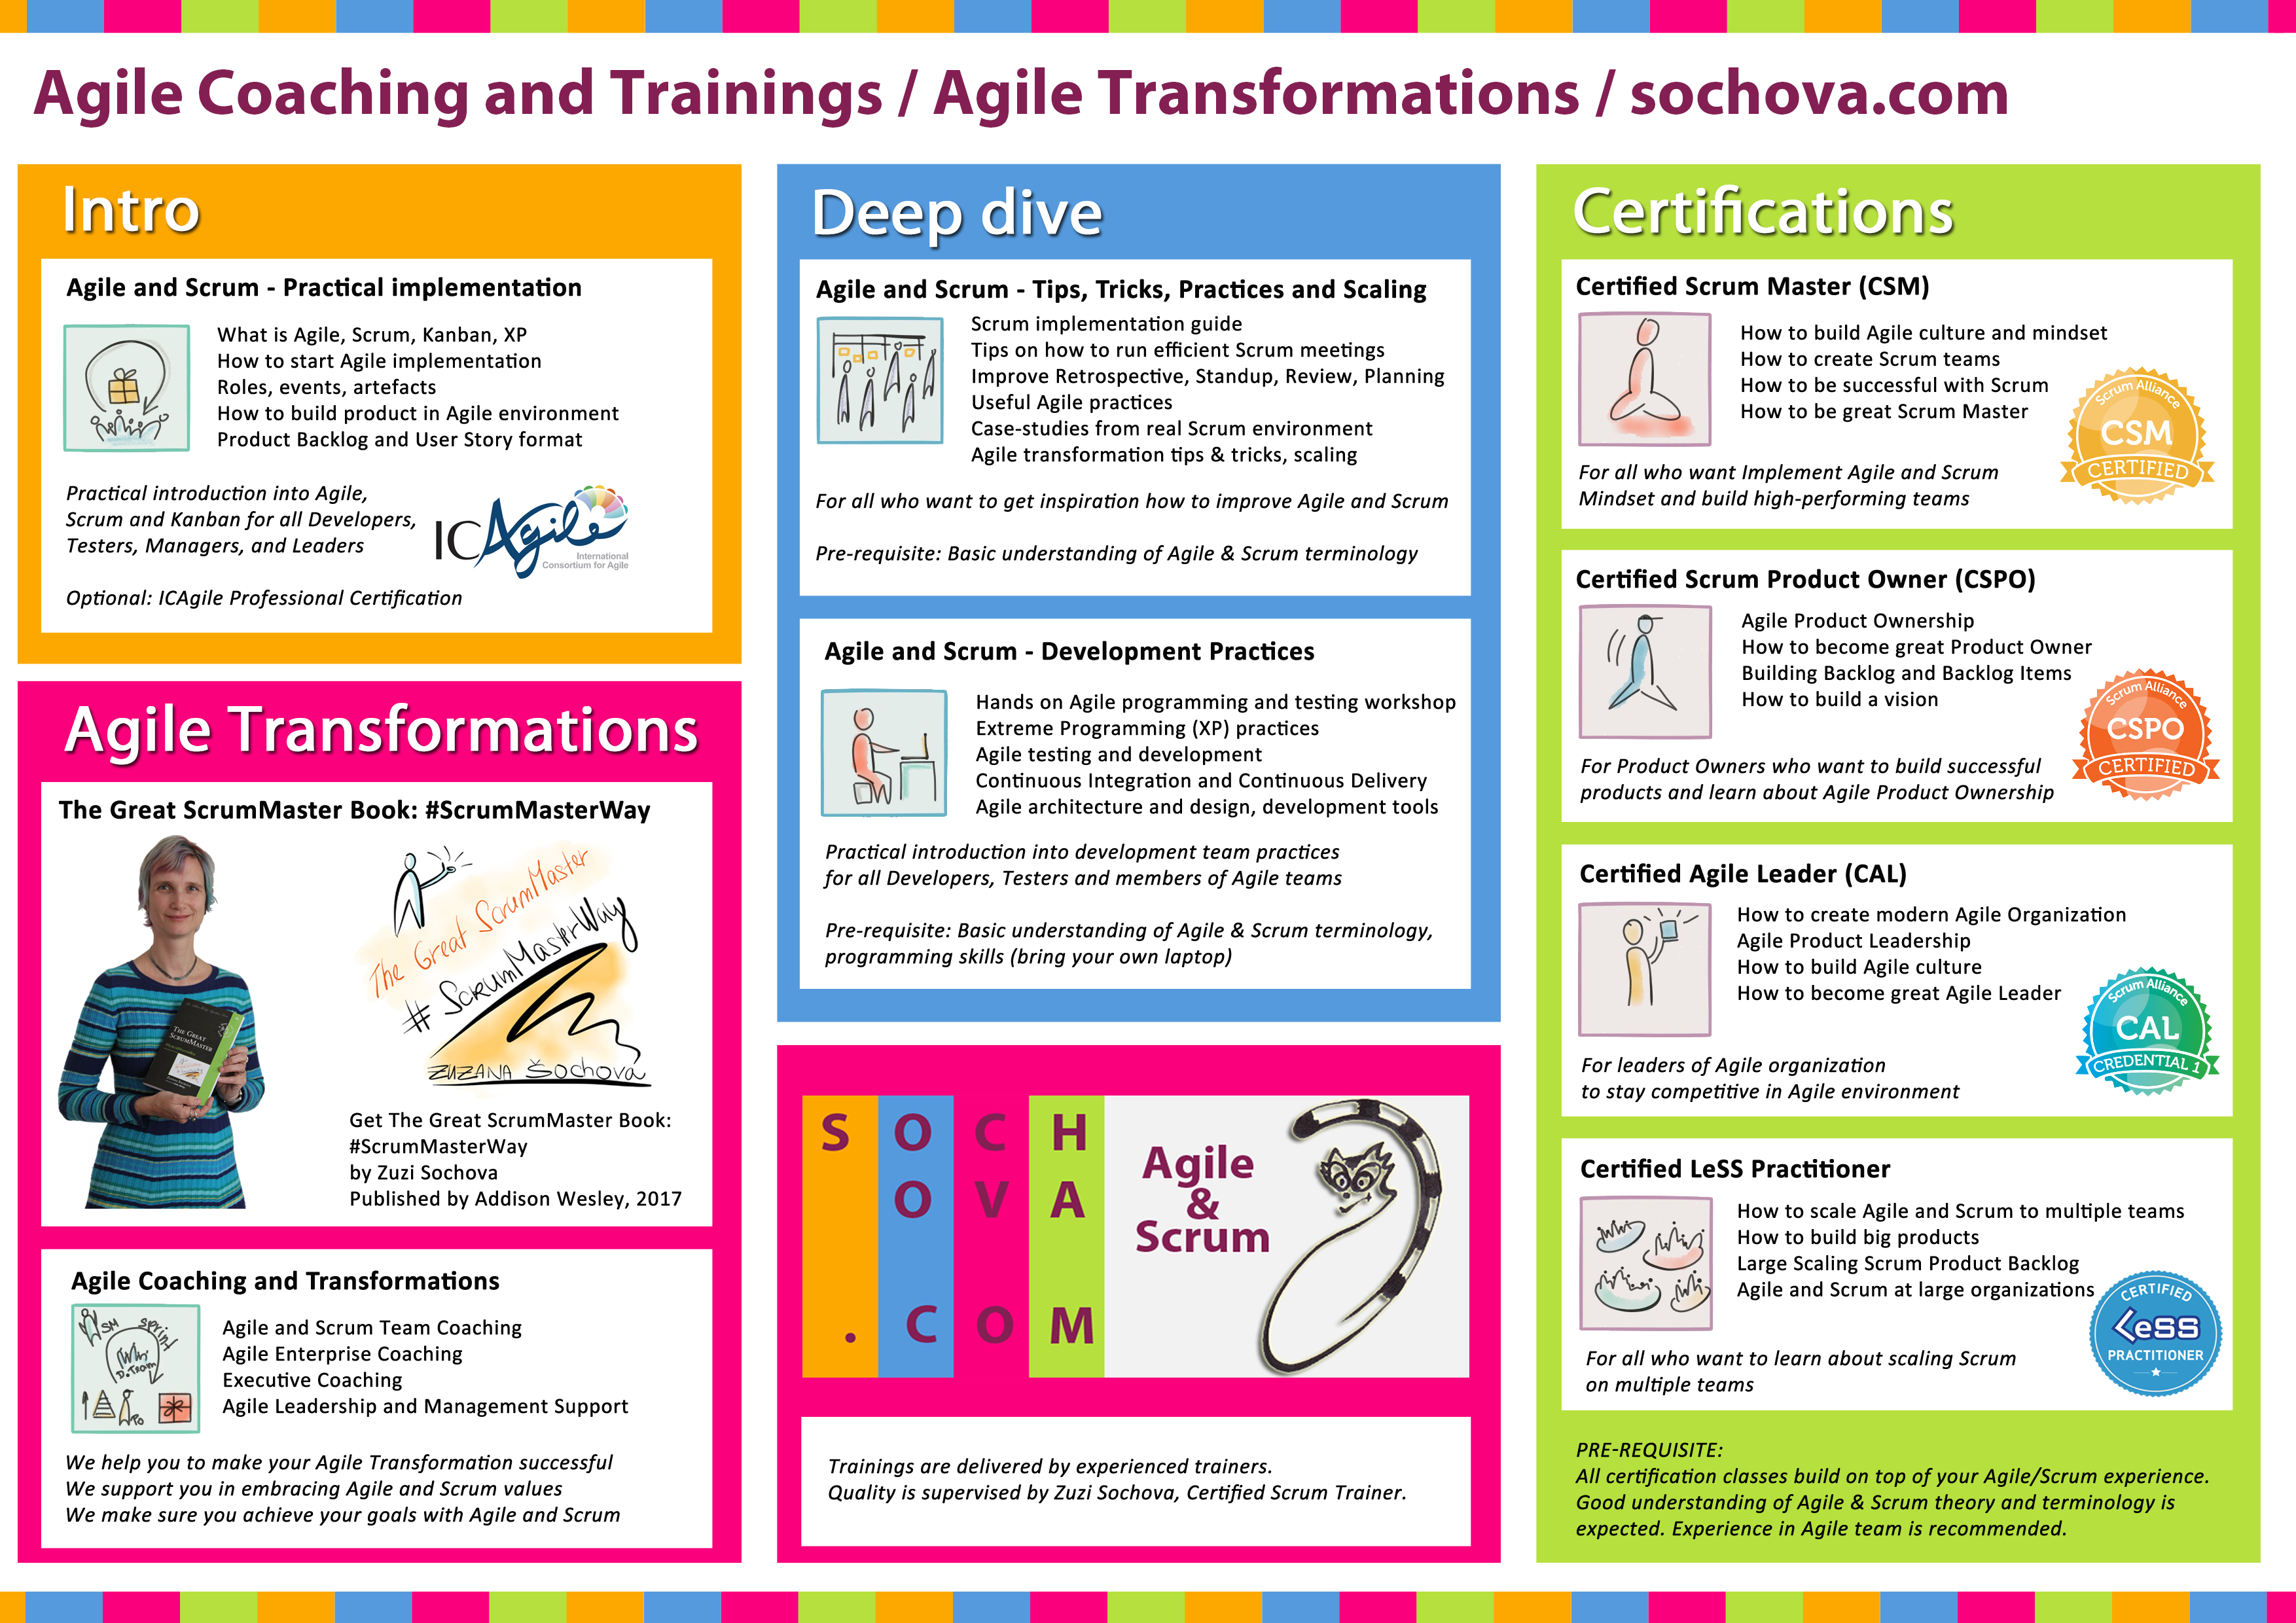 Agile Coaching and Training - sochova.com